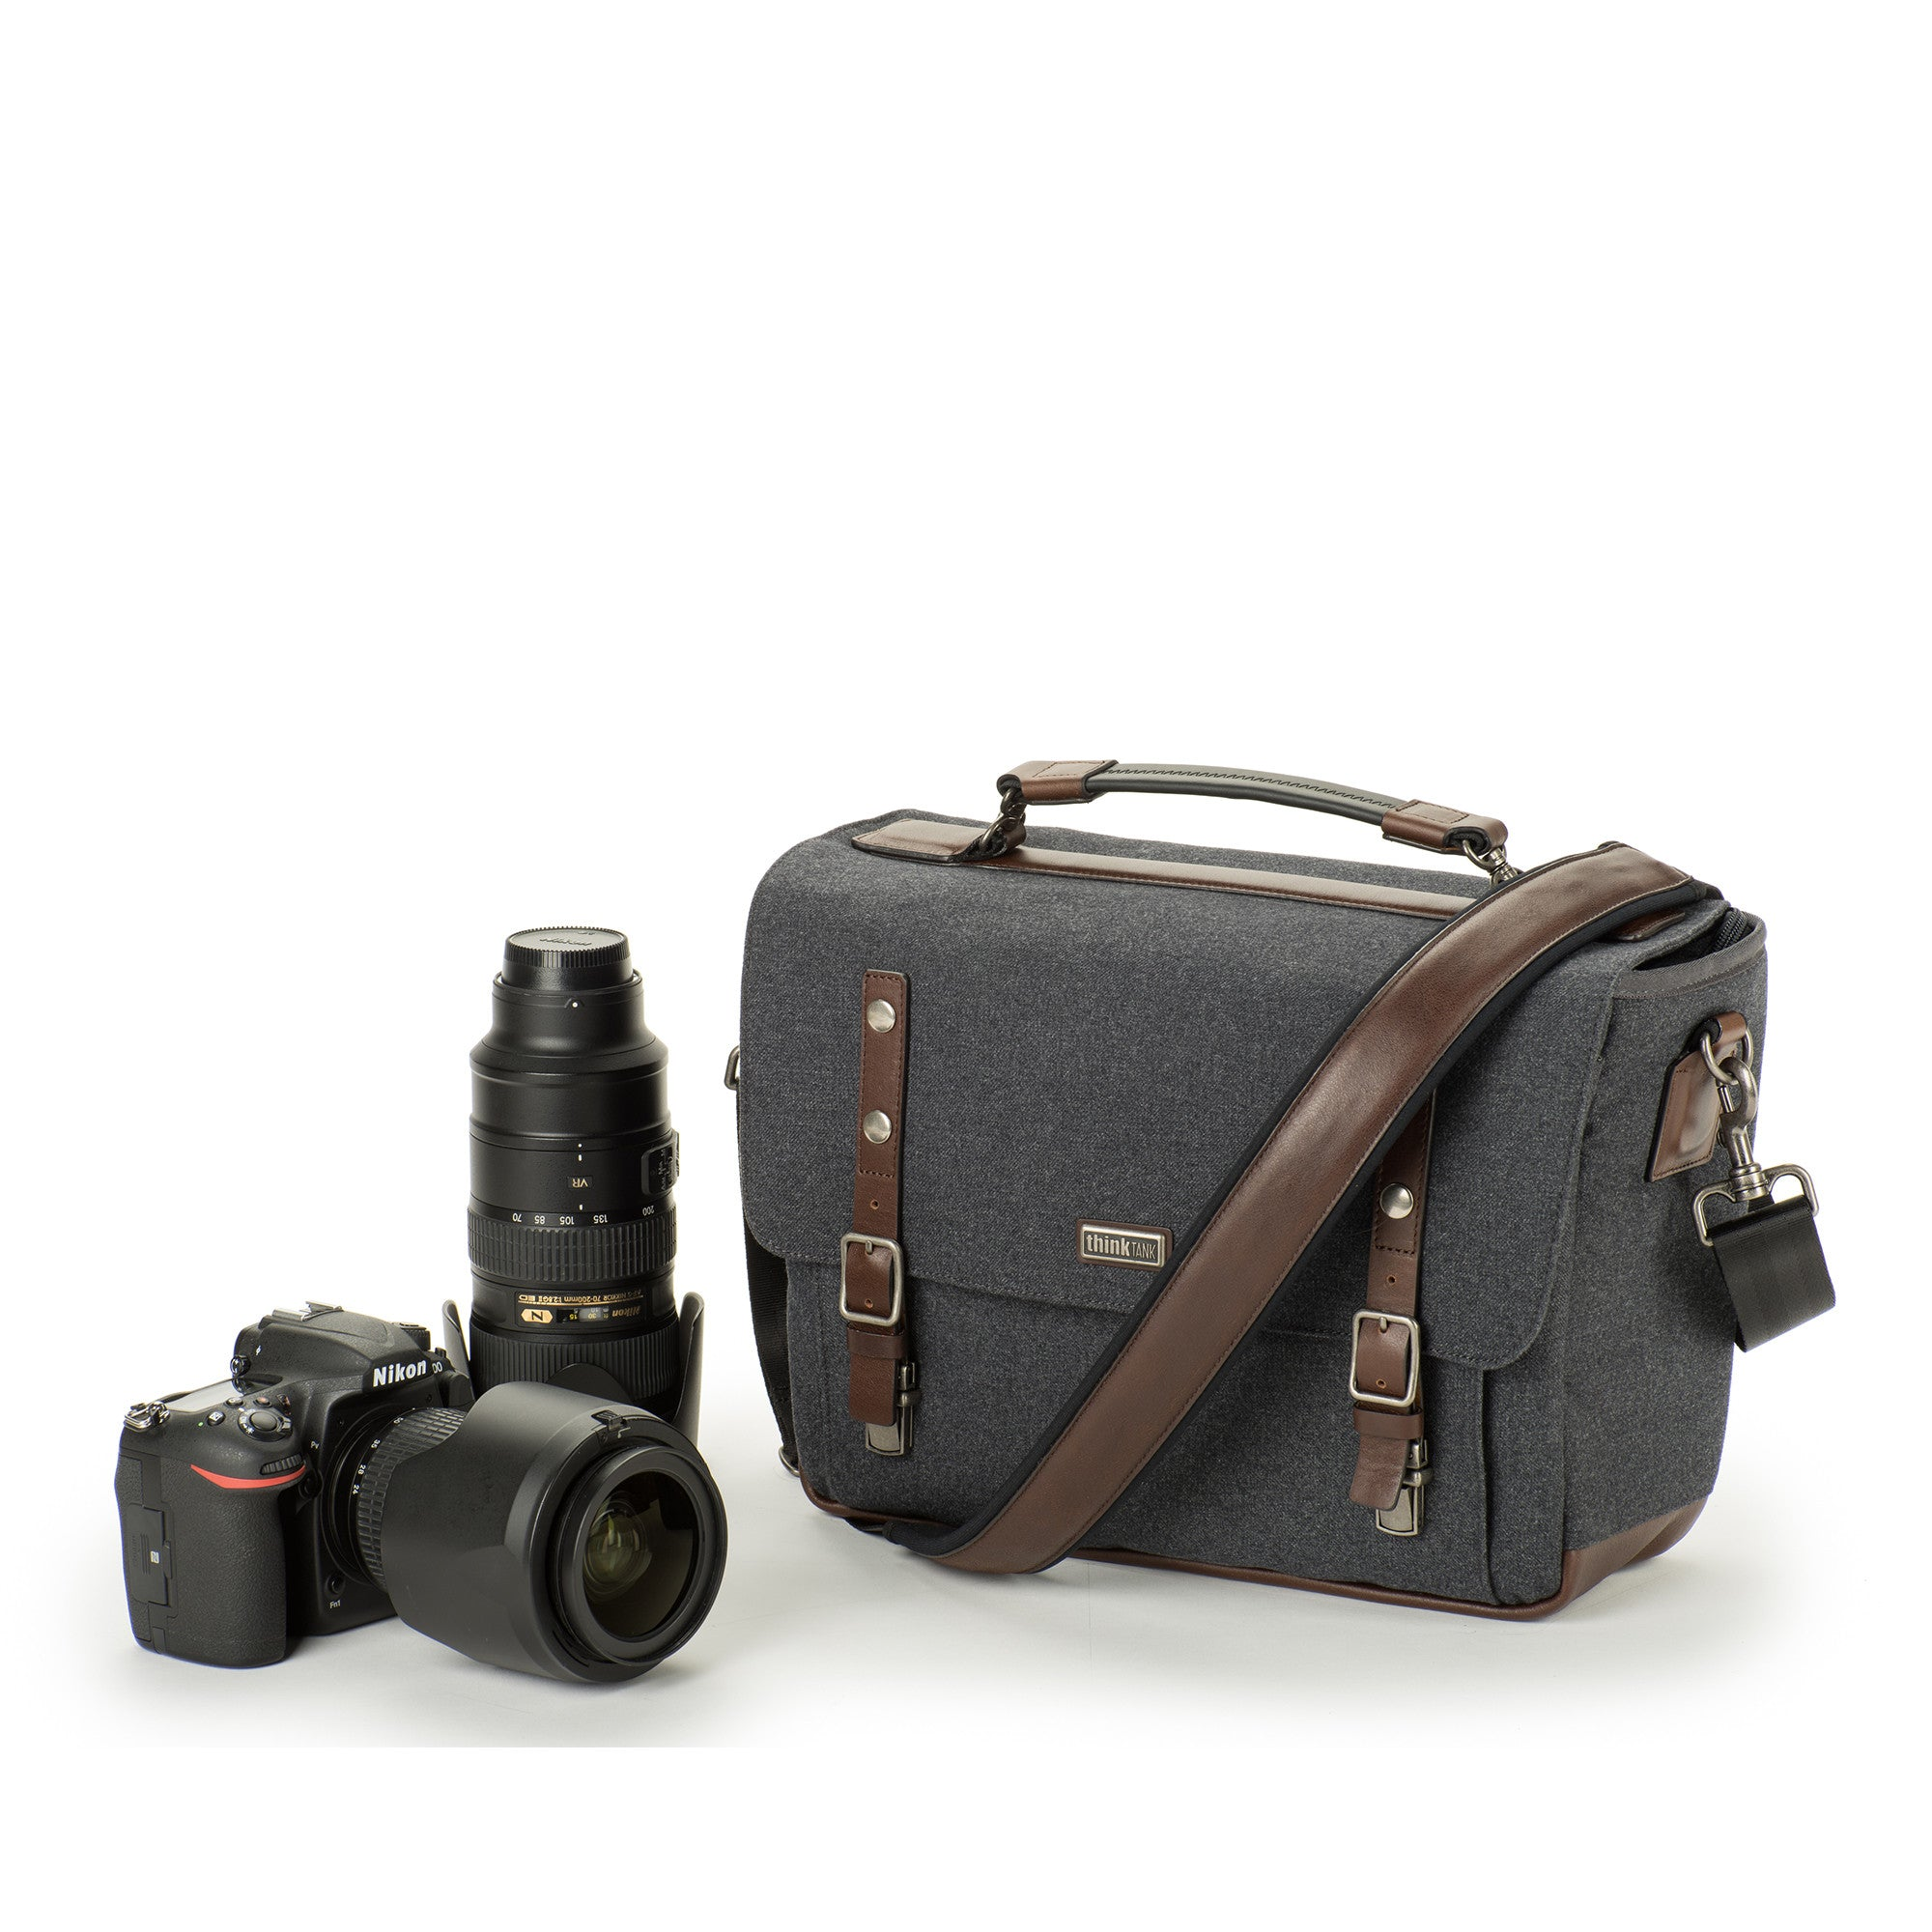 c3089a4c56 Signature 13 - Best Everyday Camera Shoulder Bag for Photography ...